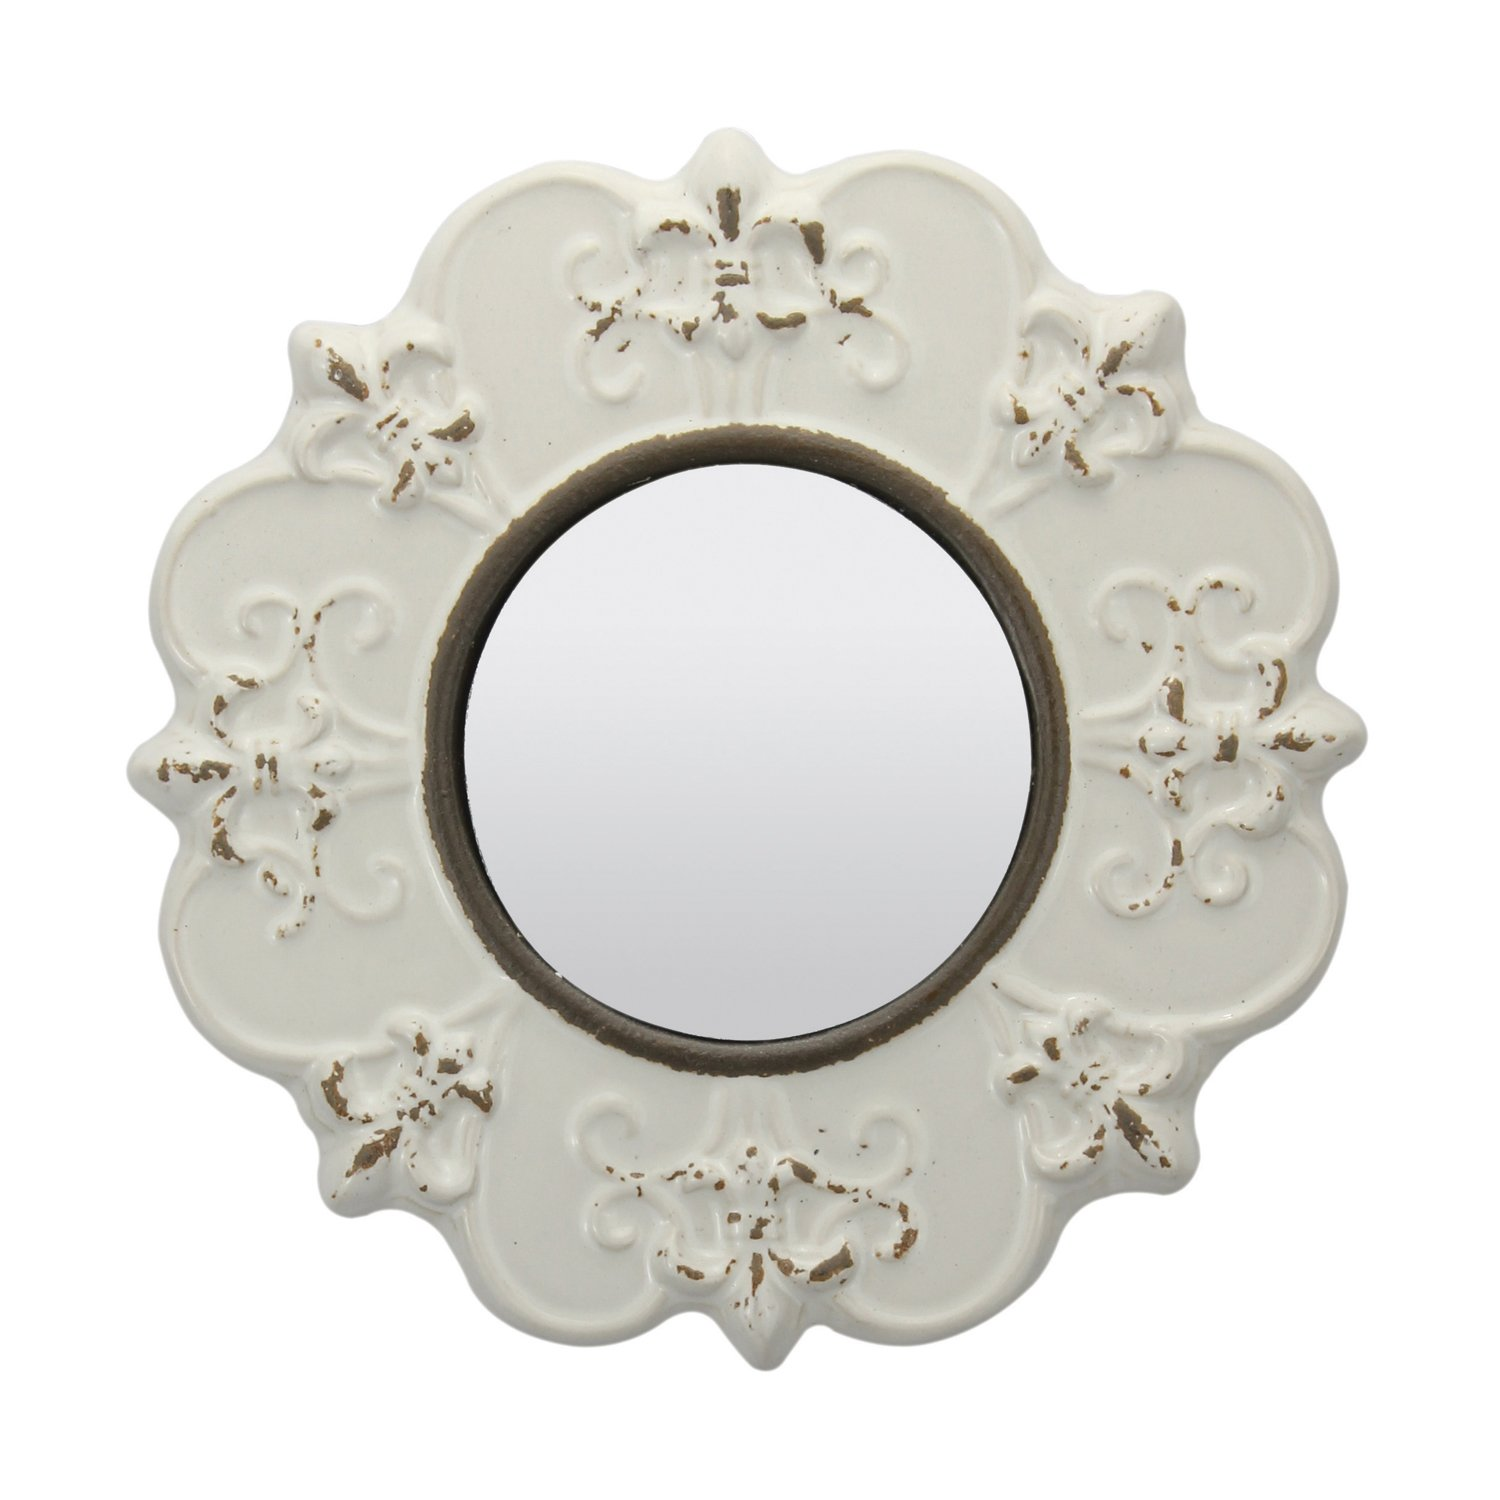 Use this Stonebriar Decorative Round Antique White Ceramic Wall Mirror by with other items in a similar finish in a wall gallery for a cohesive look or as a grouping of a set of 3.